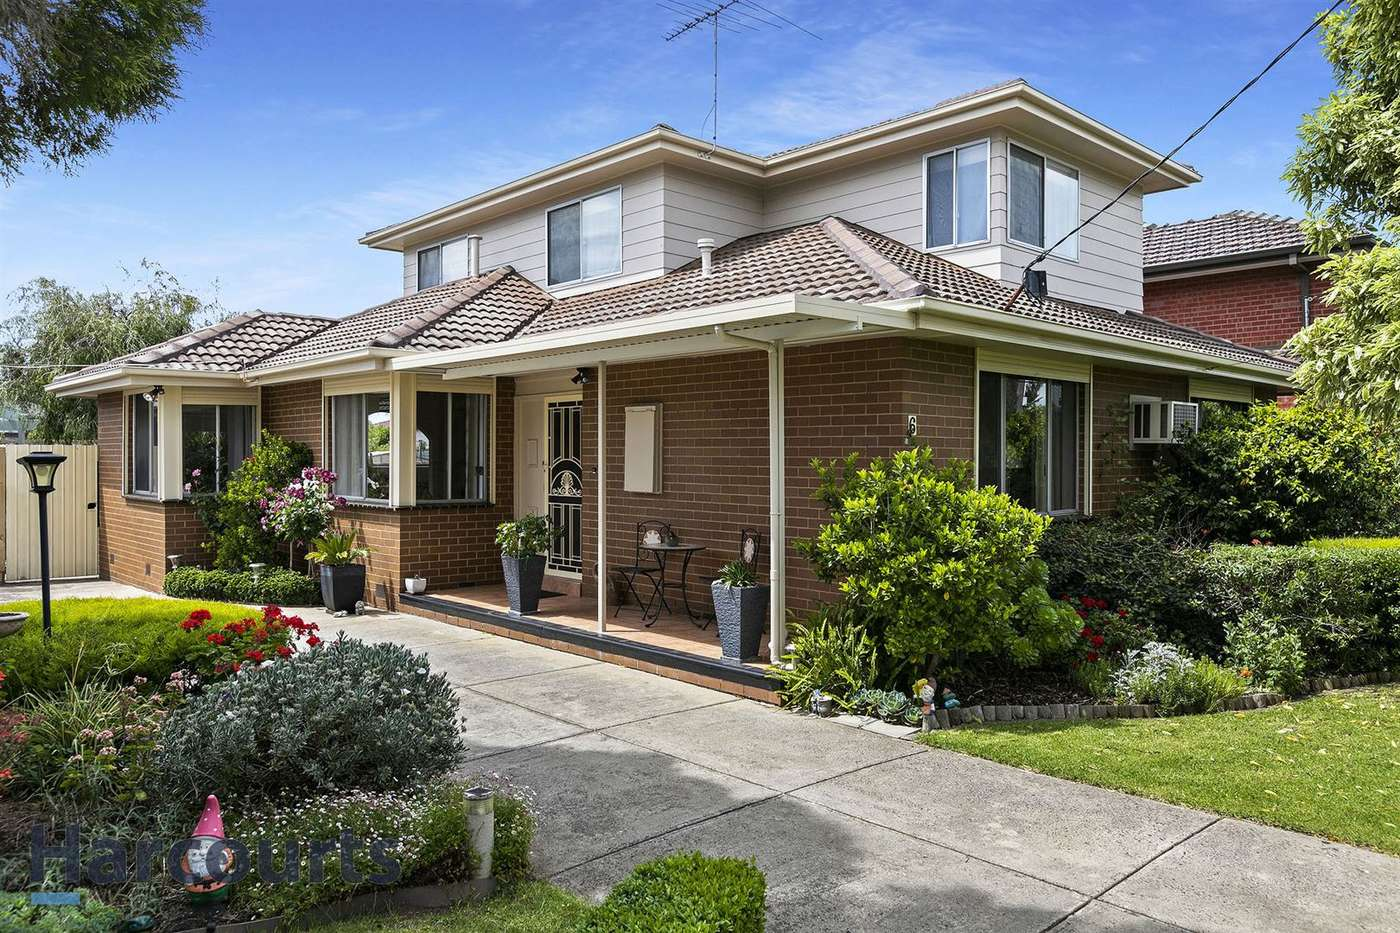 Main view of Homely house listing, 6 Clough Street, Avondale Heights, VIC 3034